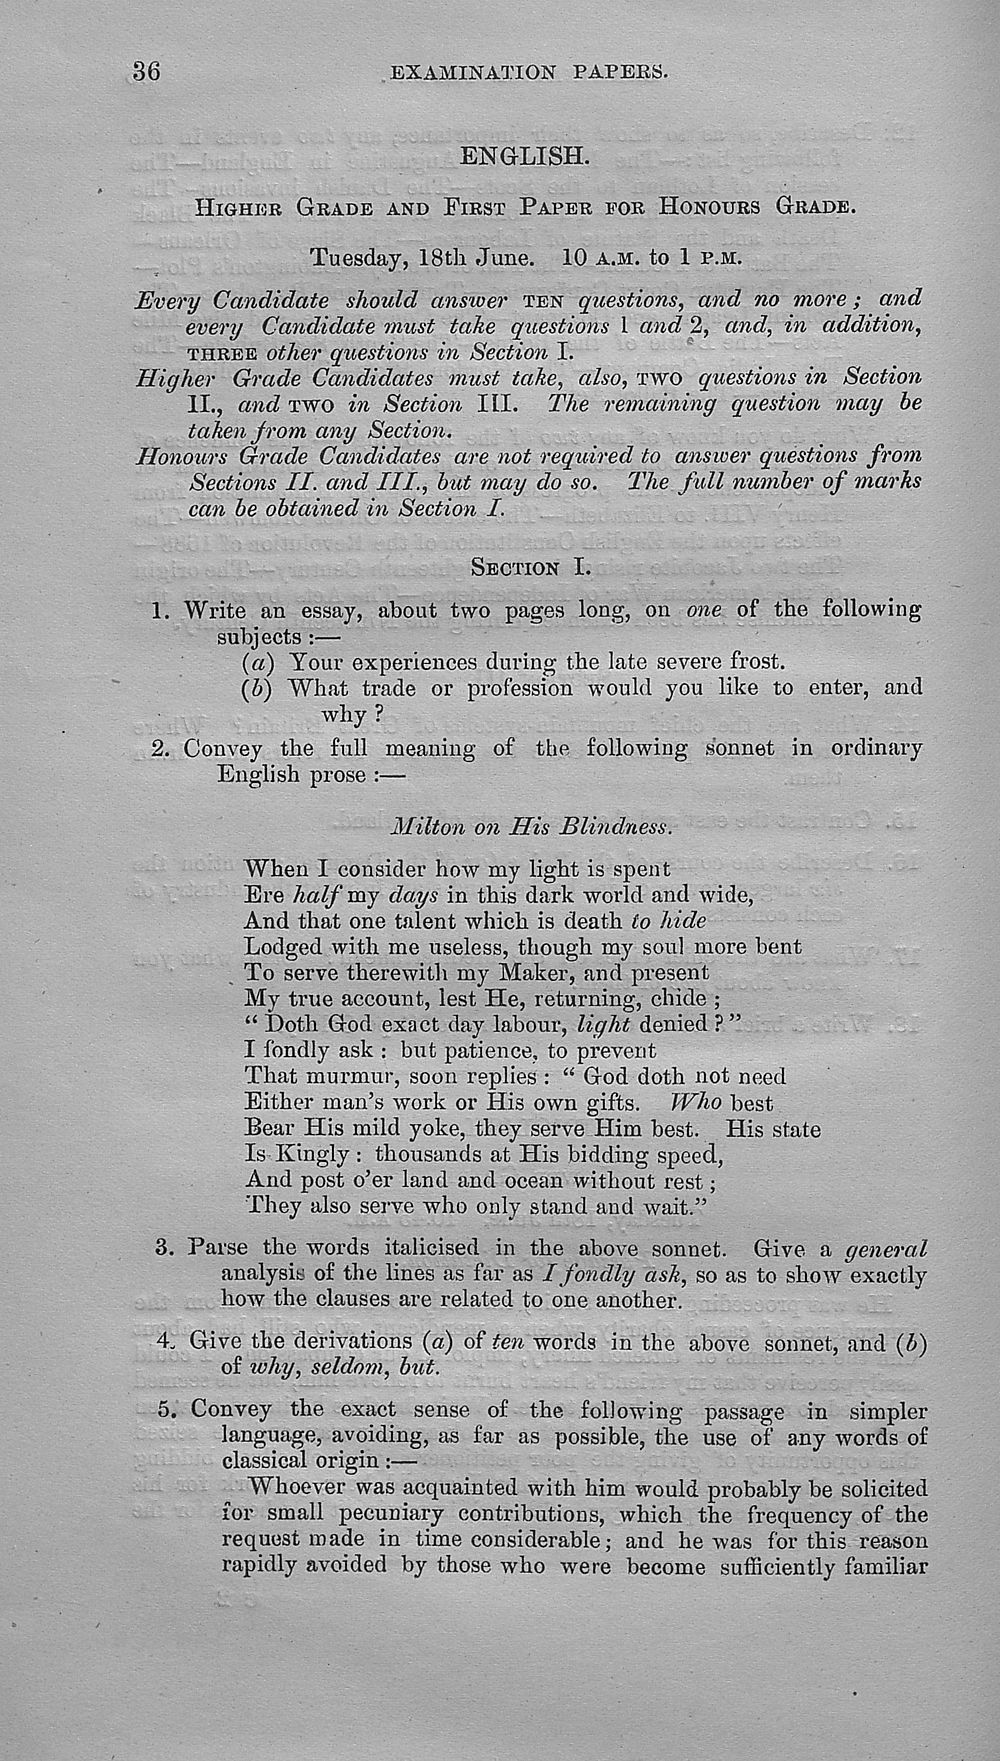 Browse and search > 1889-1895 - Papers set at the Examination for